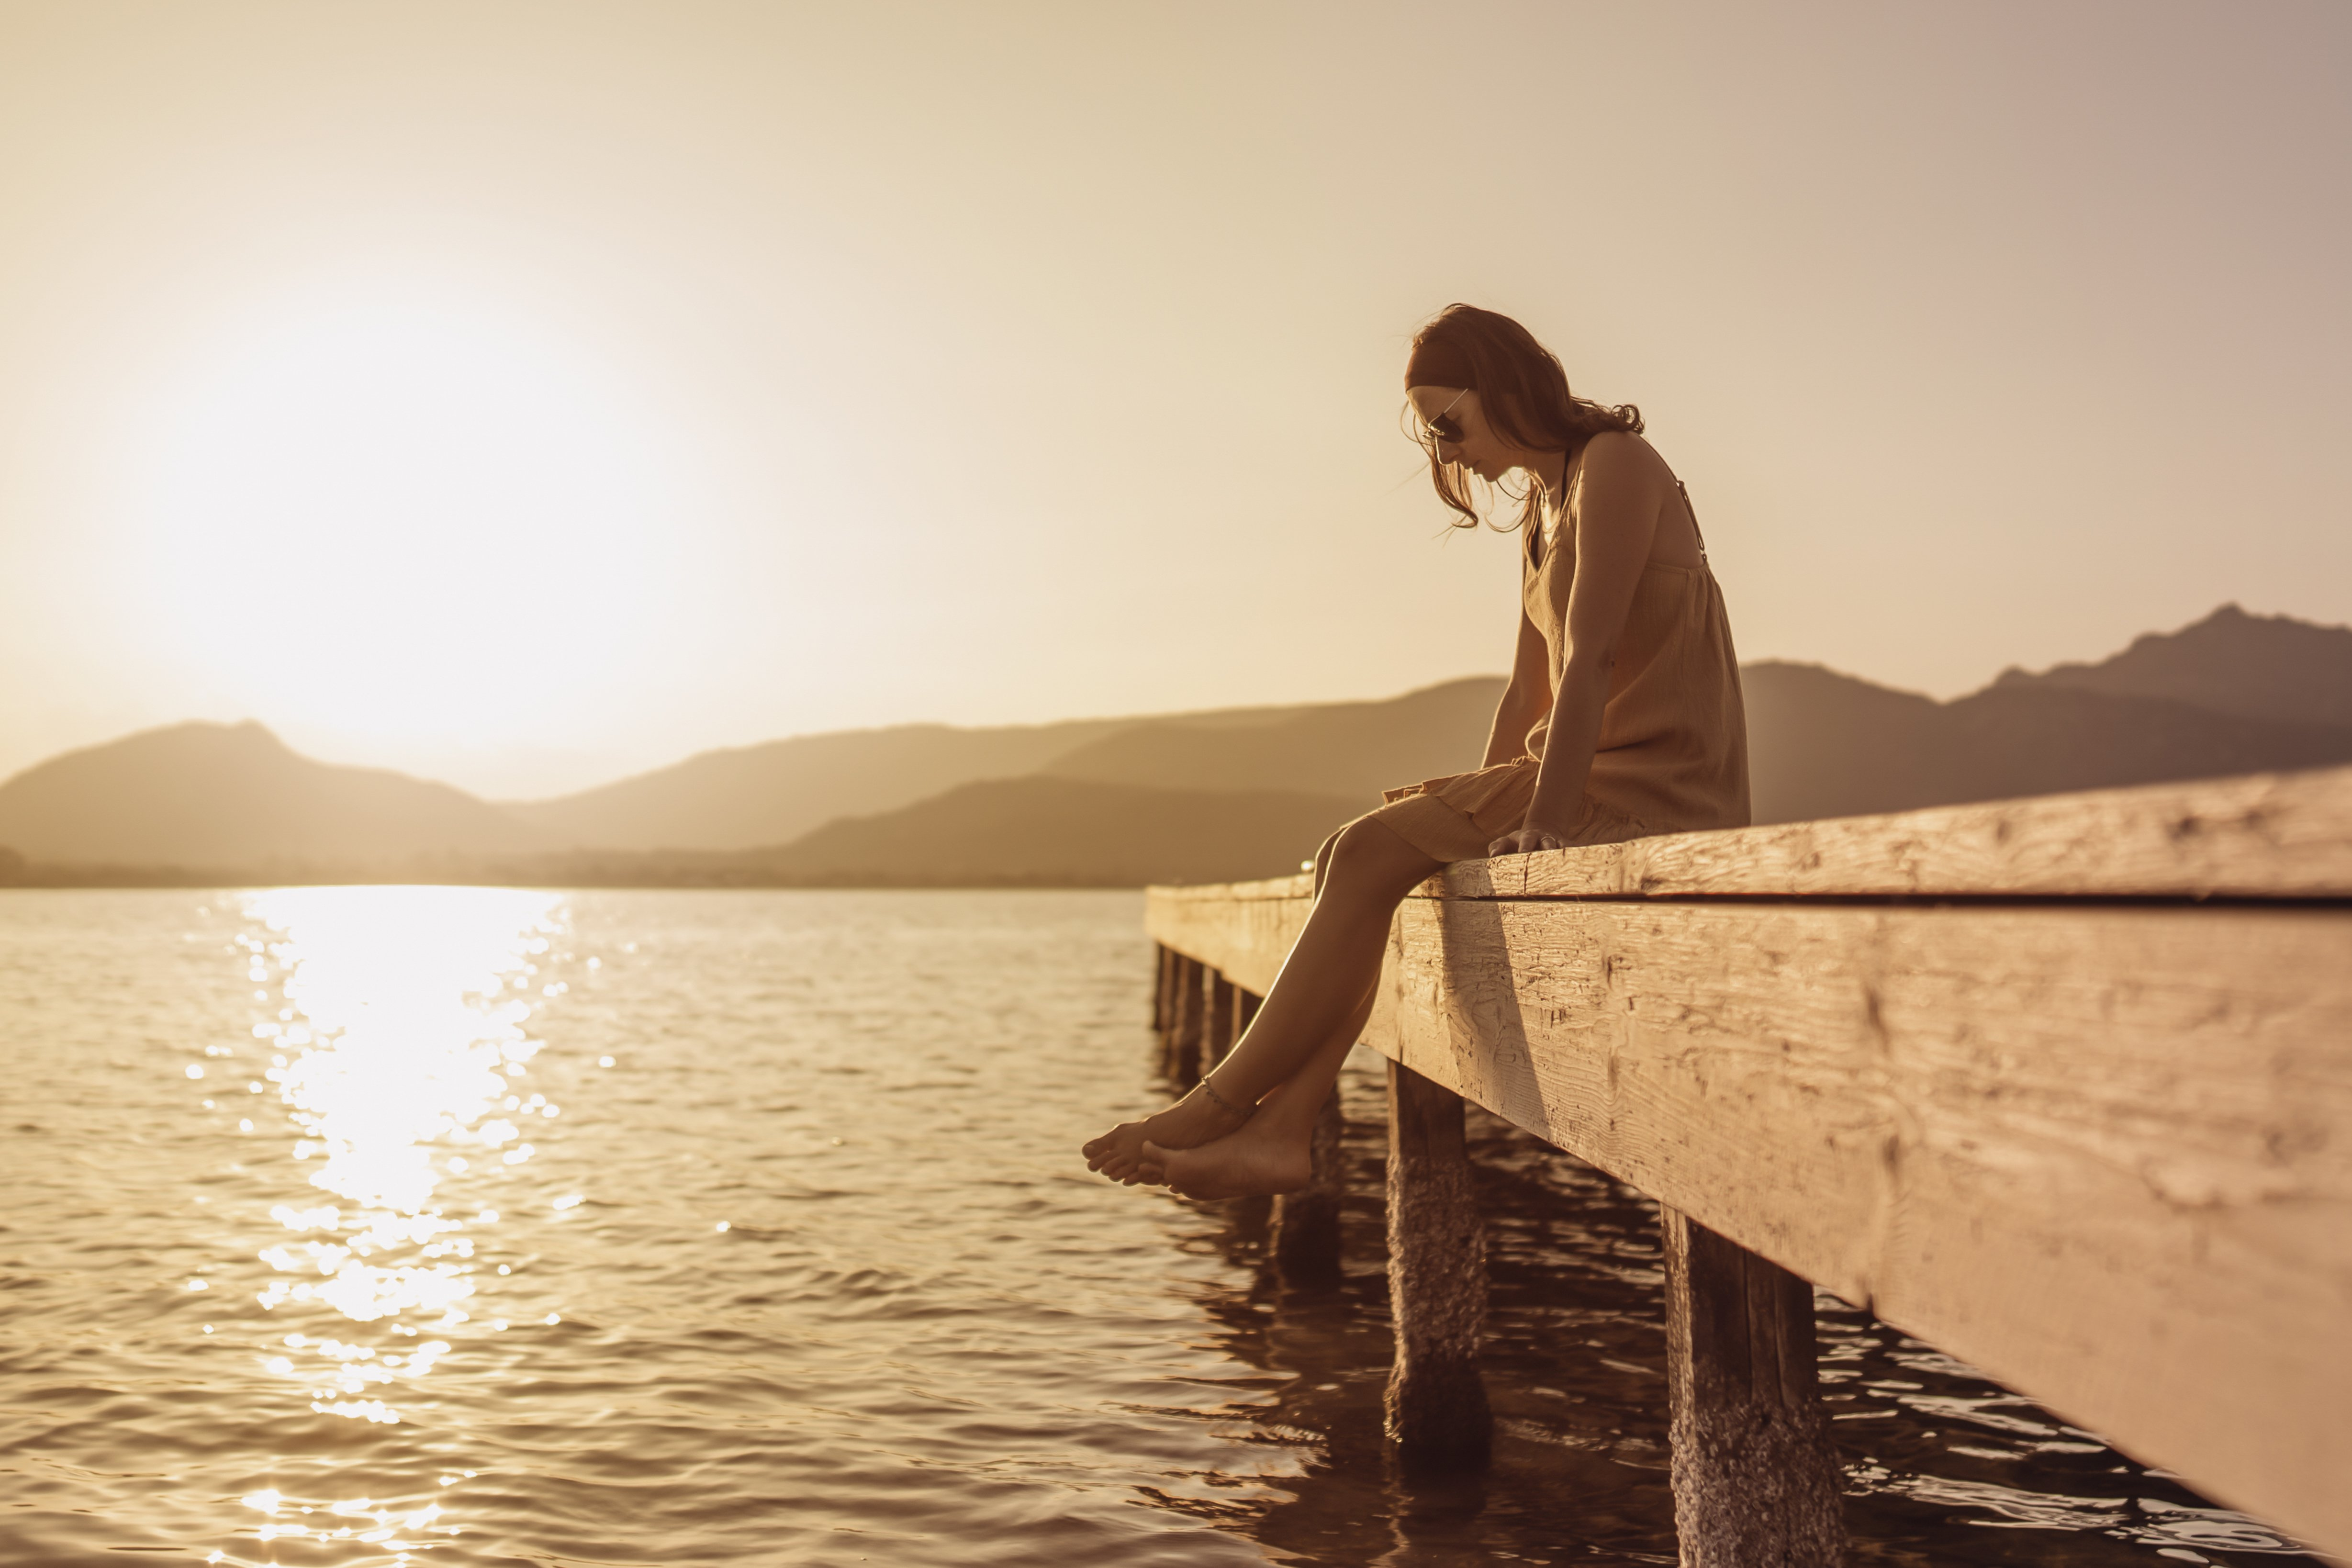 A young woman sitting on a pier at sunset.│ Source: Shutterstock